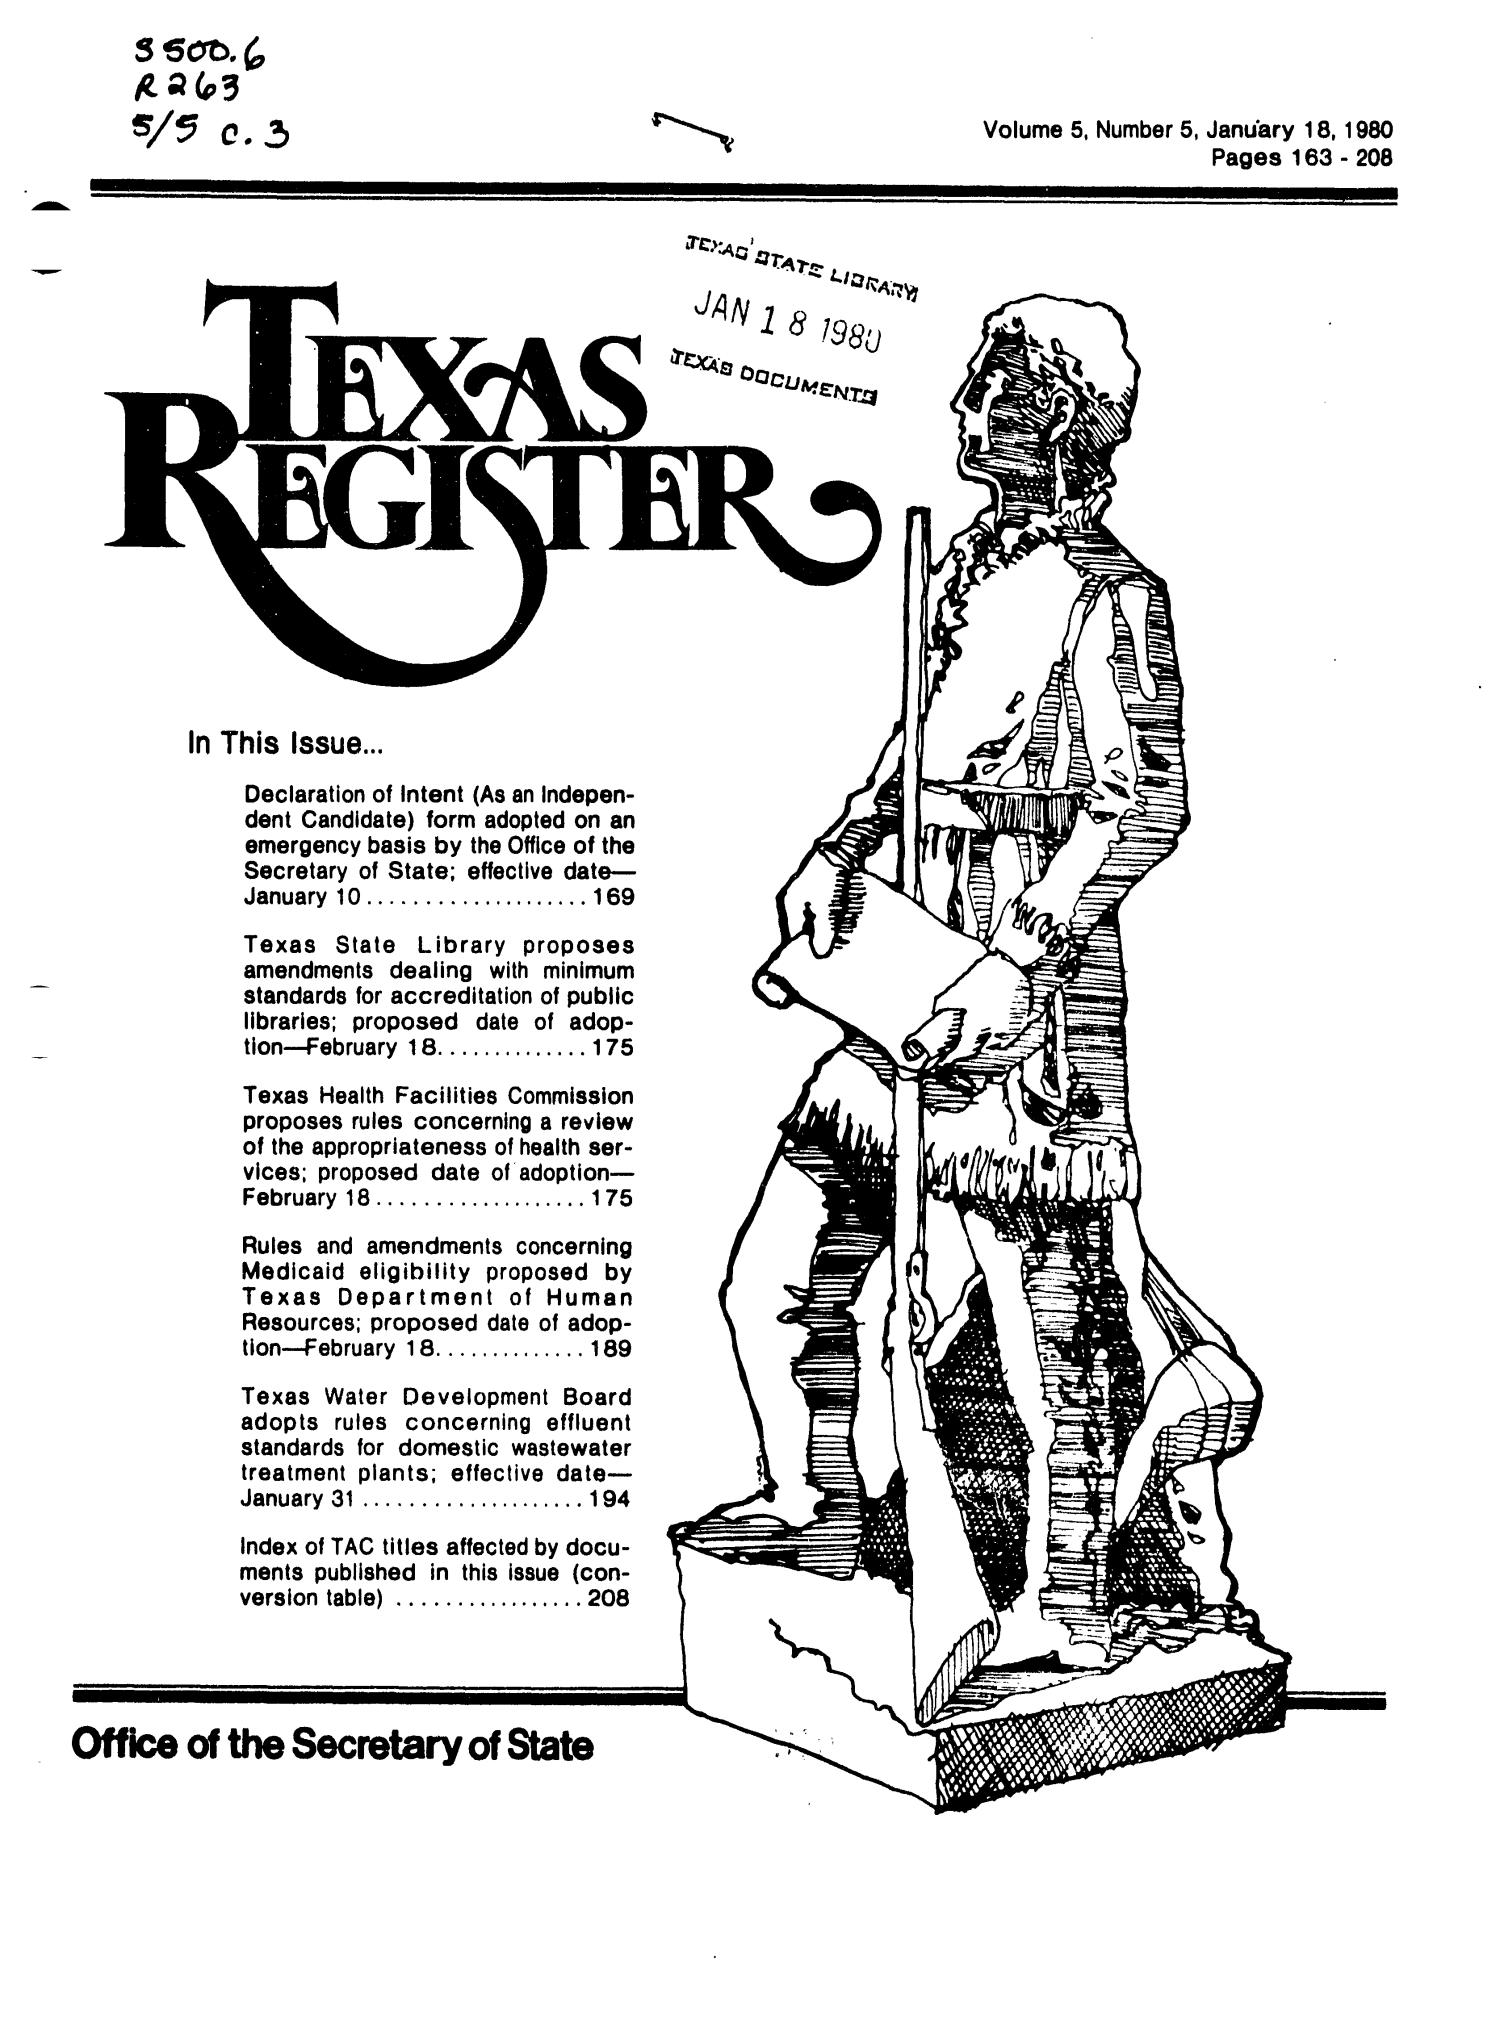 Texas Register, Volume 5, Number 5, Pages 163-206, January 18, 1980                                                                                                      Title Page